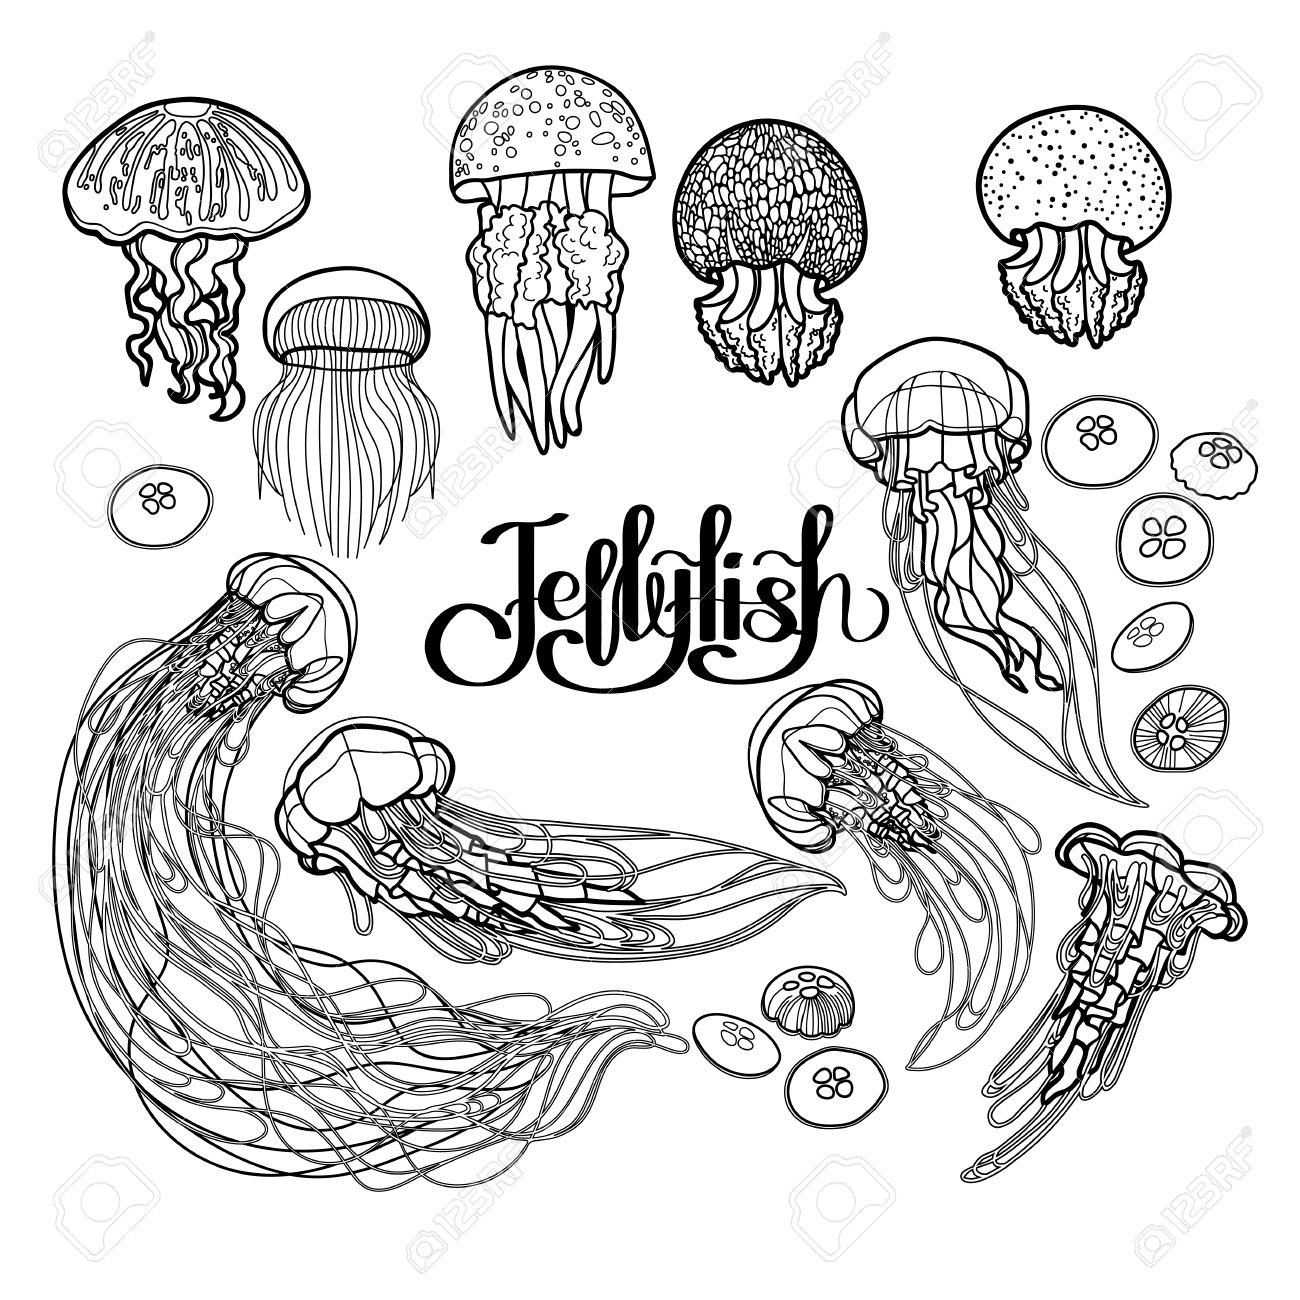 Coloring Book Page Design Jellyfish Drawn In Line Art Style Vector Ocean Animals Black And White Colors